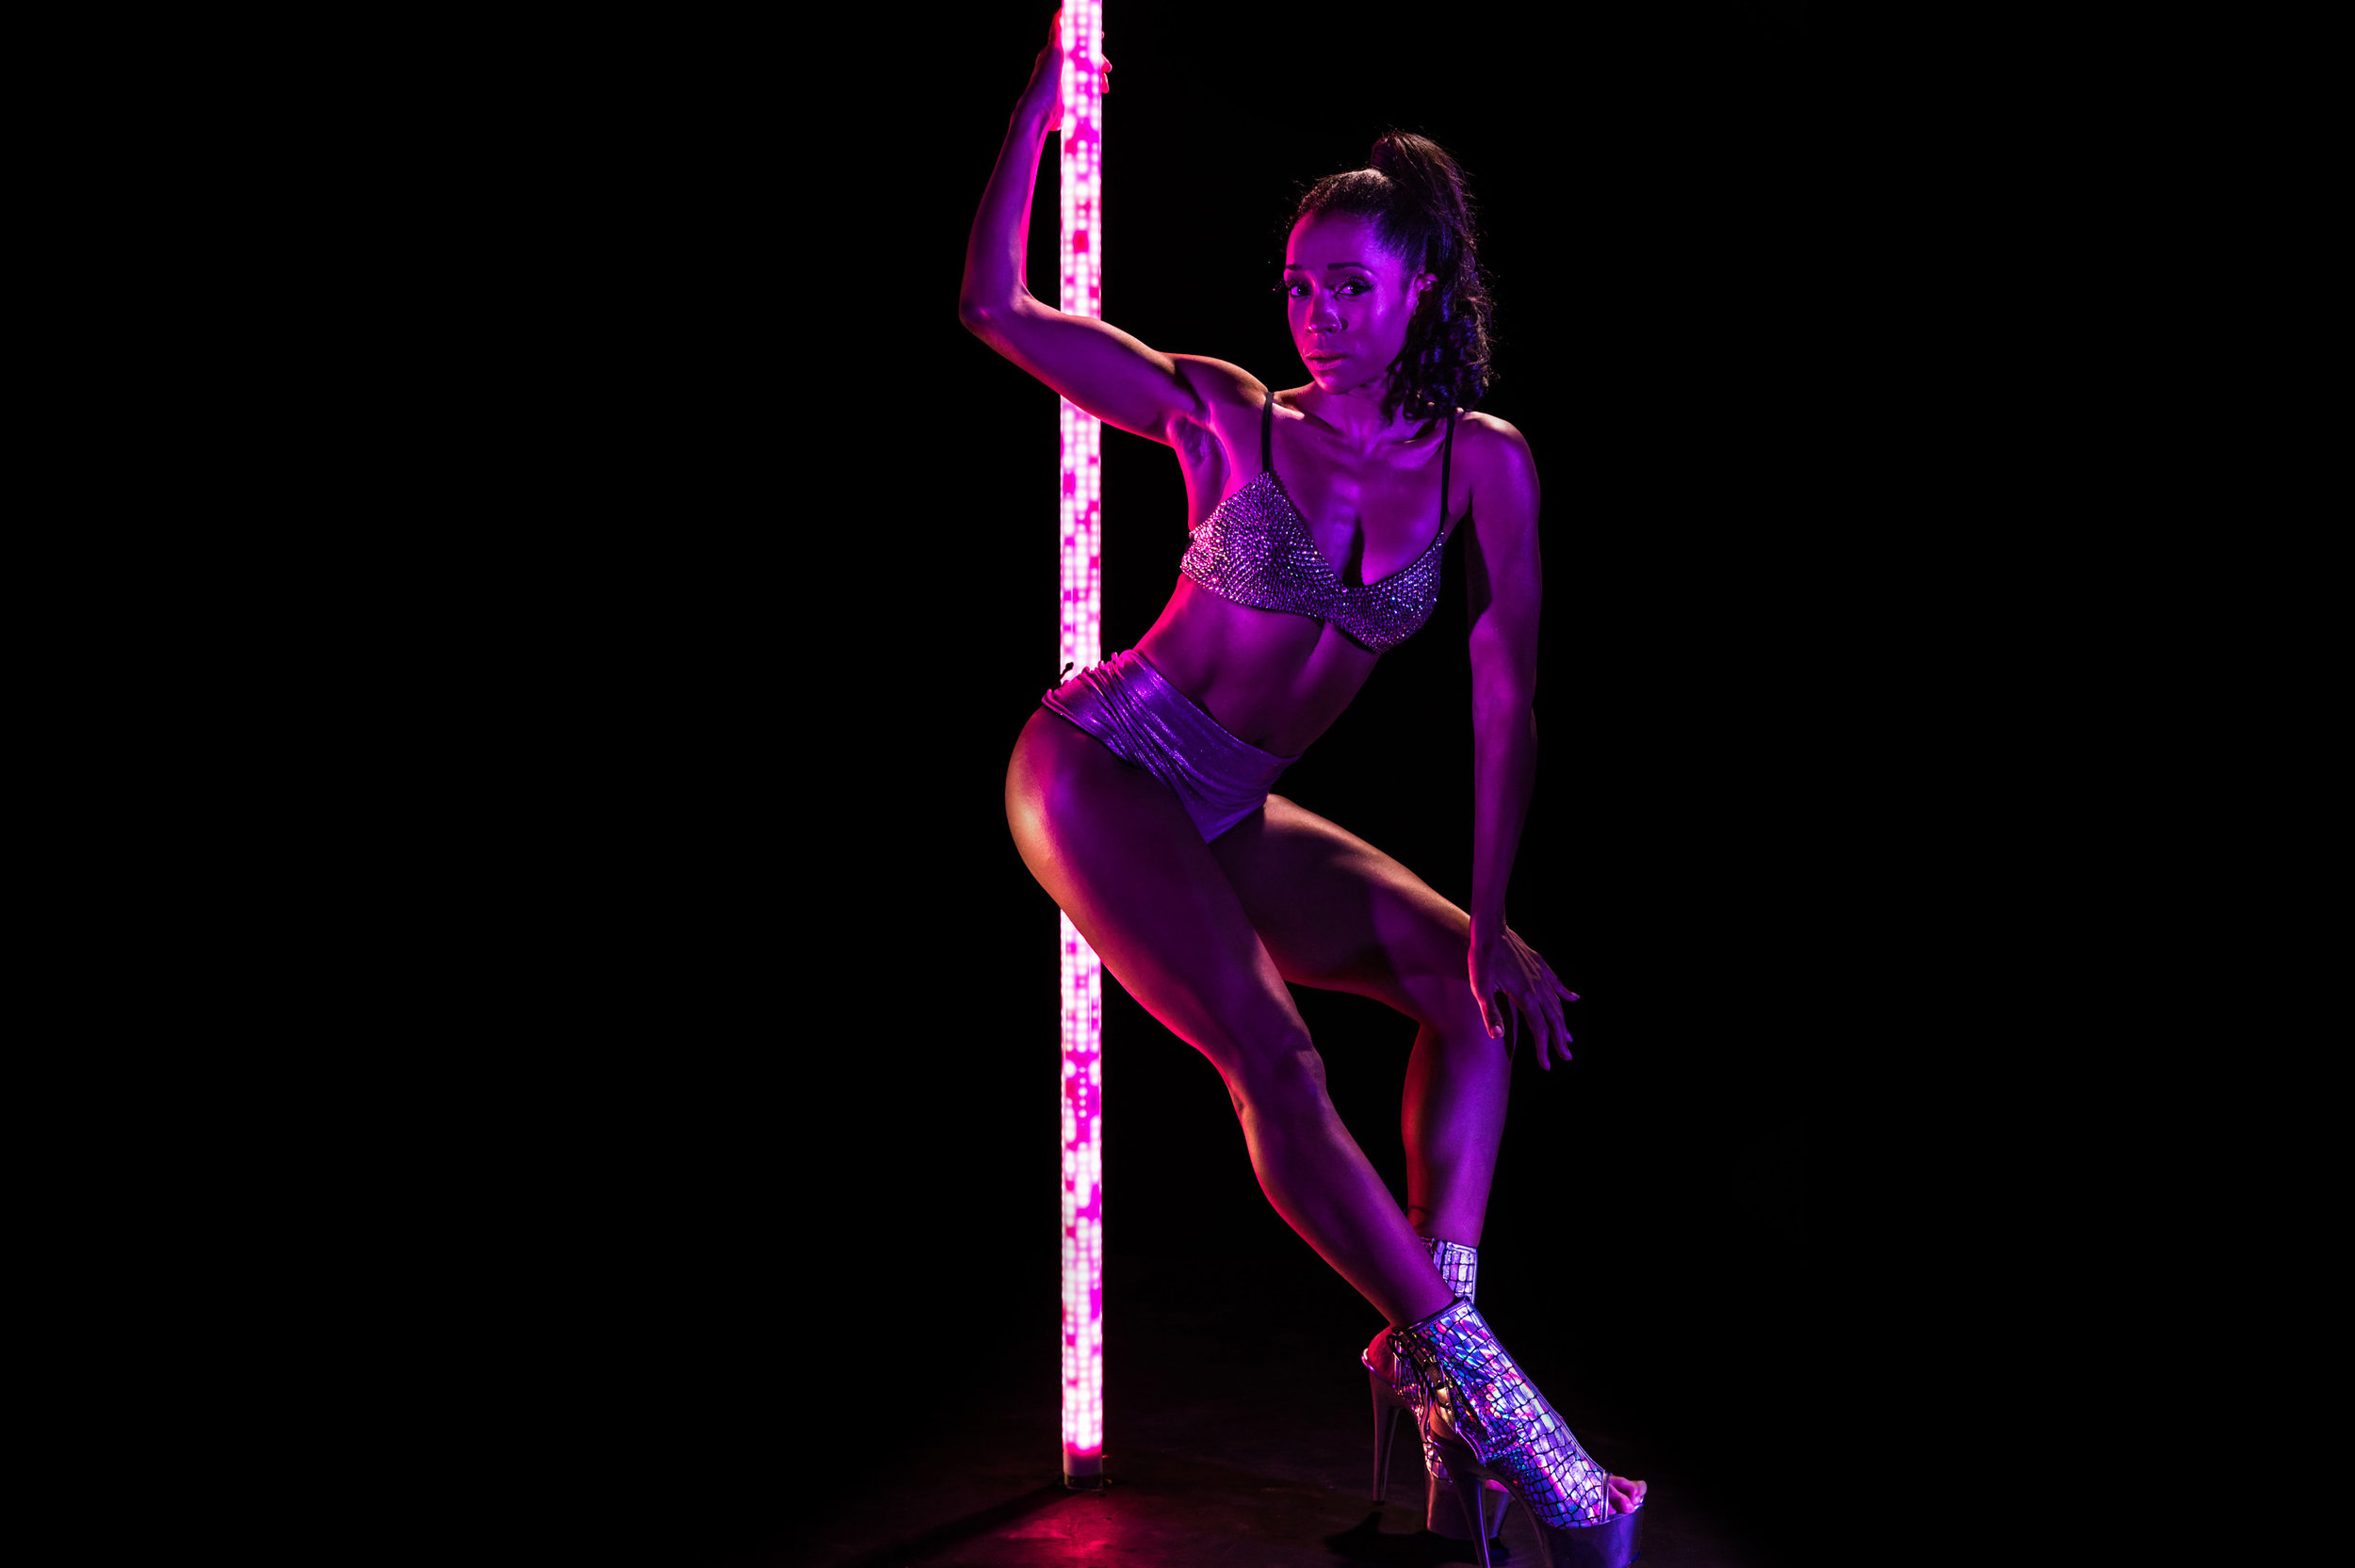 PoleFX LED Dance Pole 19